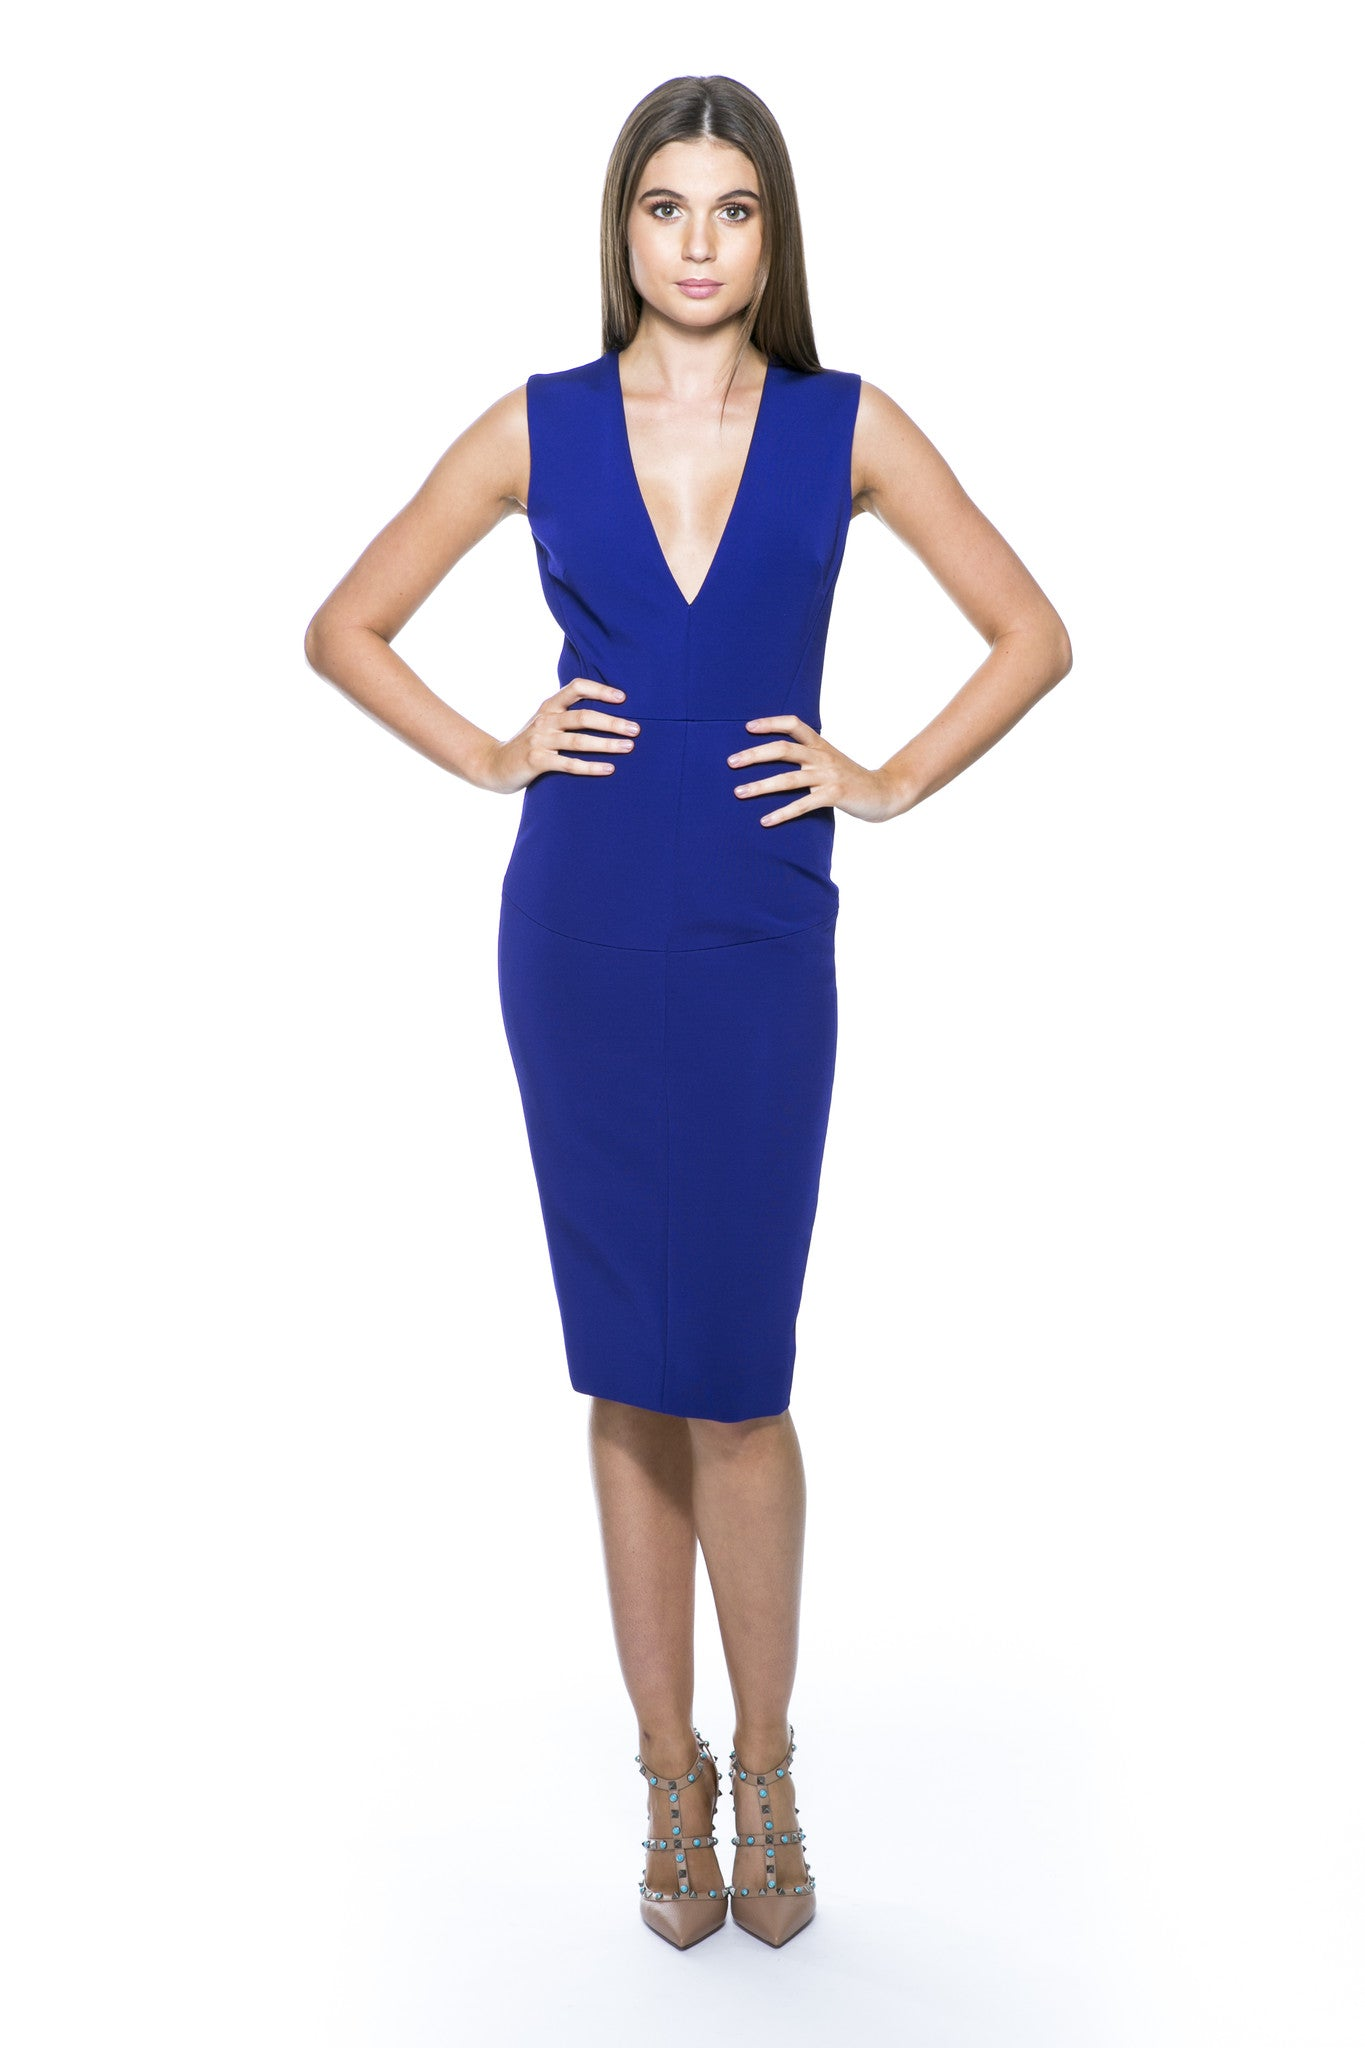 VICTORIA BECKHAM SLEEVELESS DEEP-V FITTED DRESS ELECTRIC BLUE – THE ...